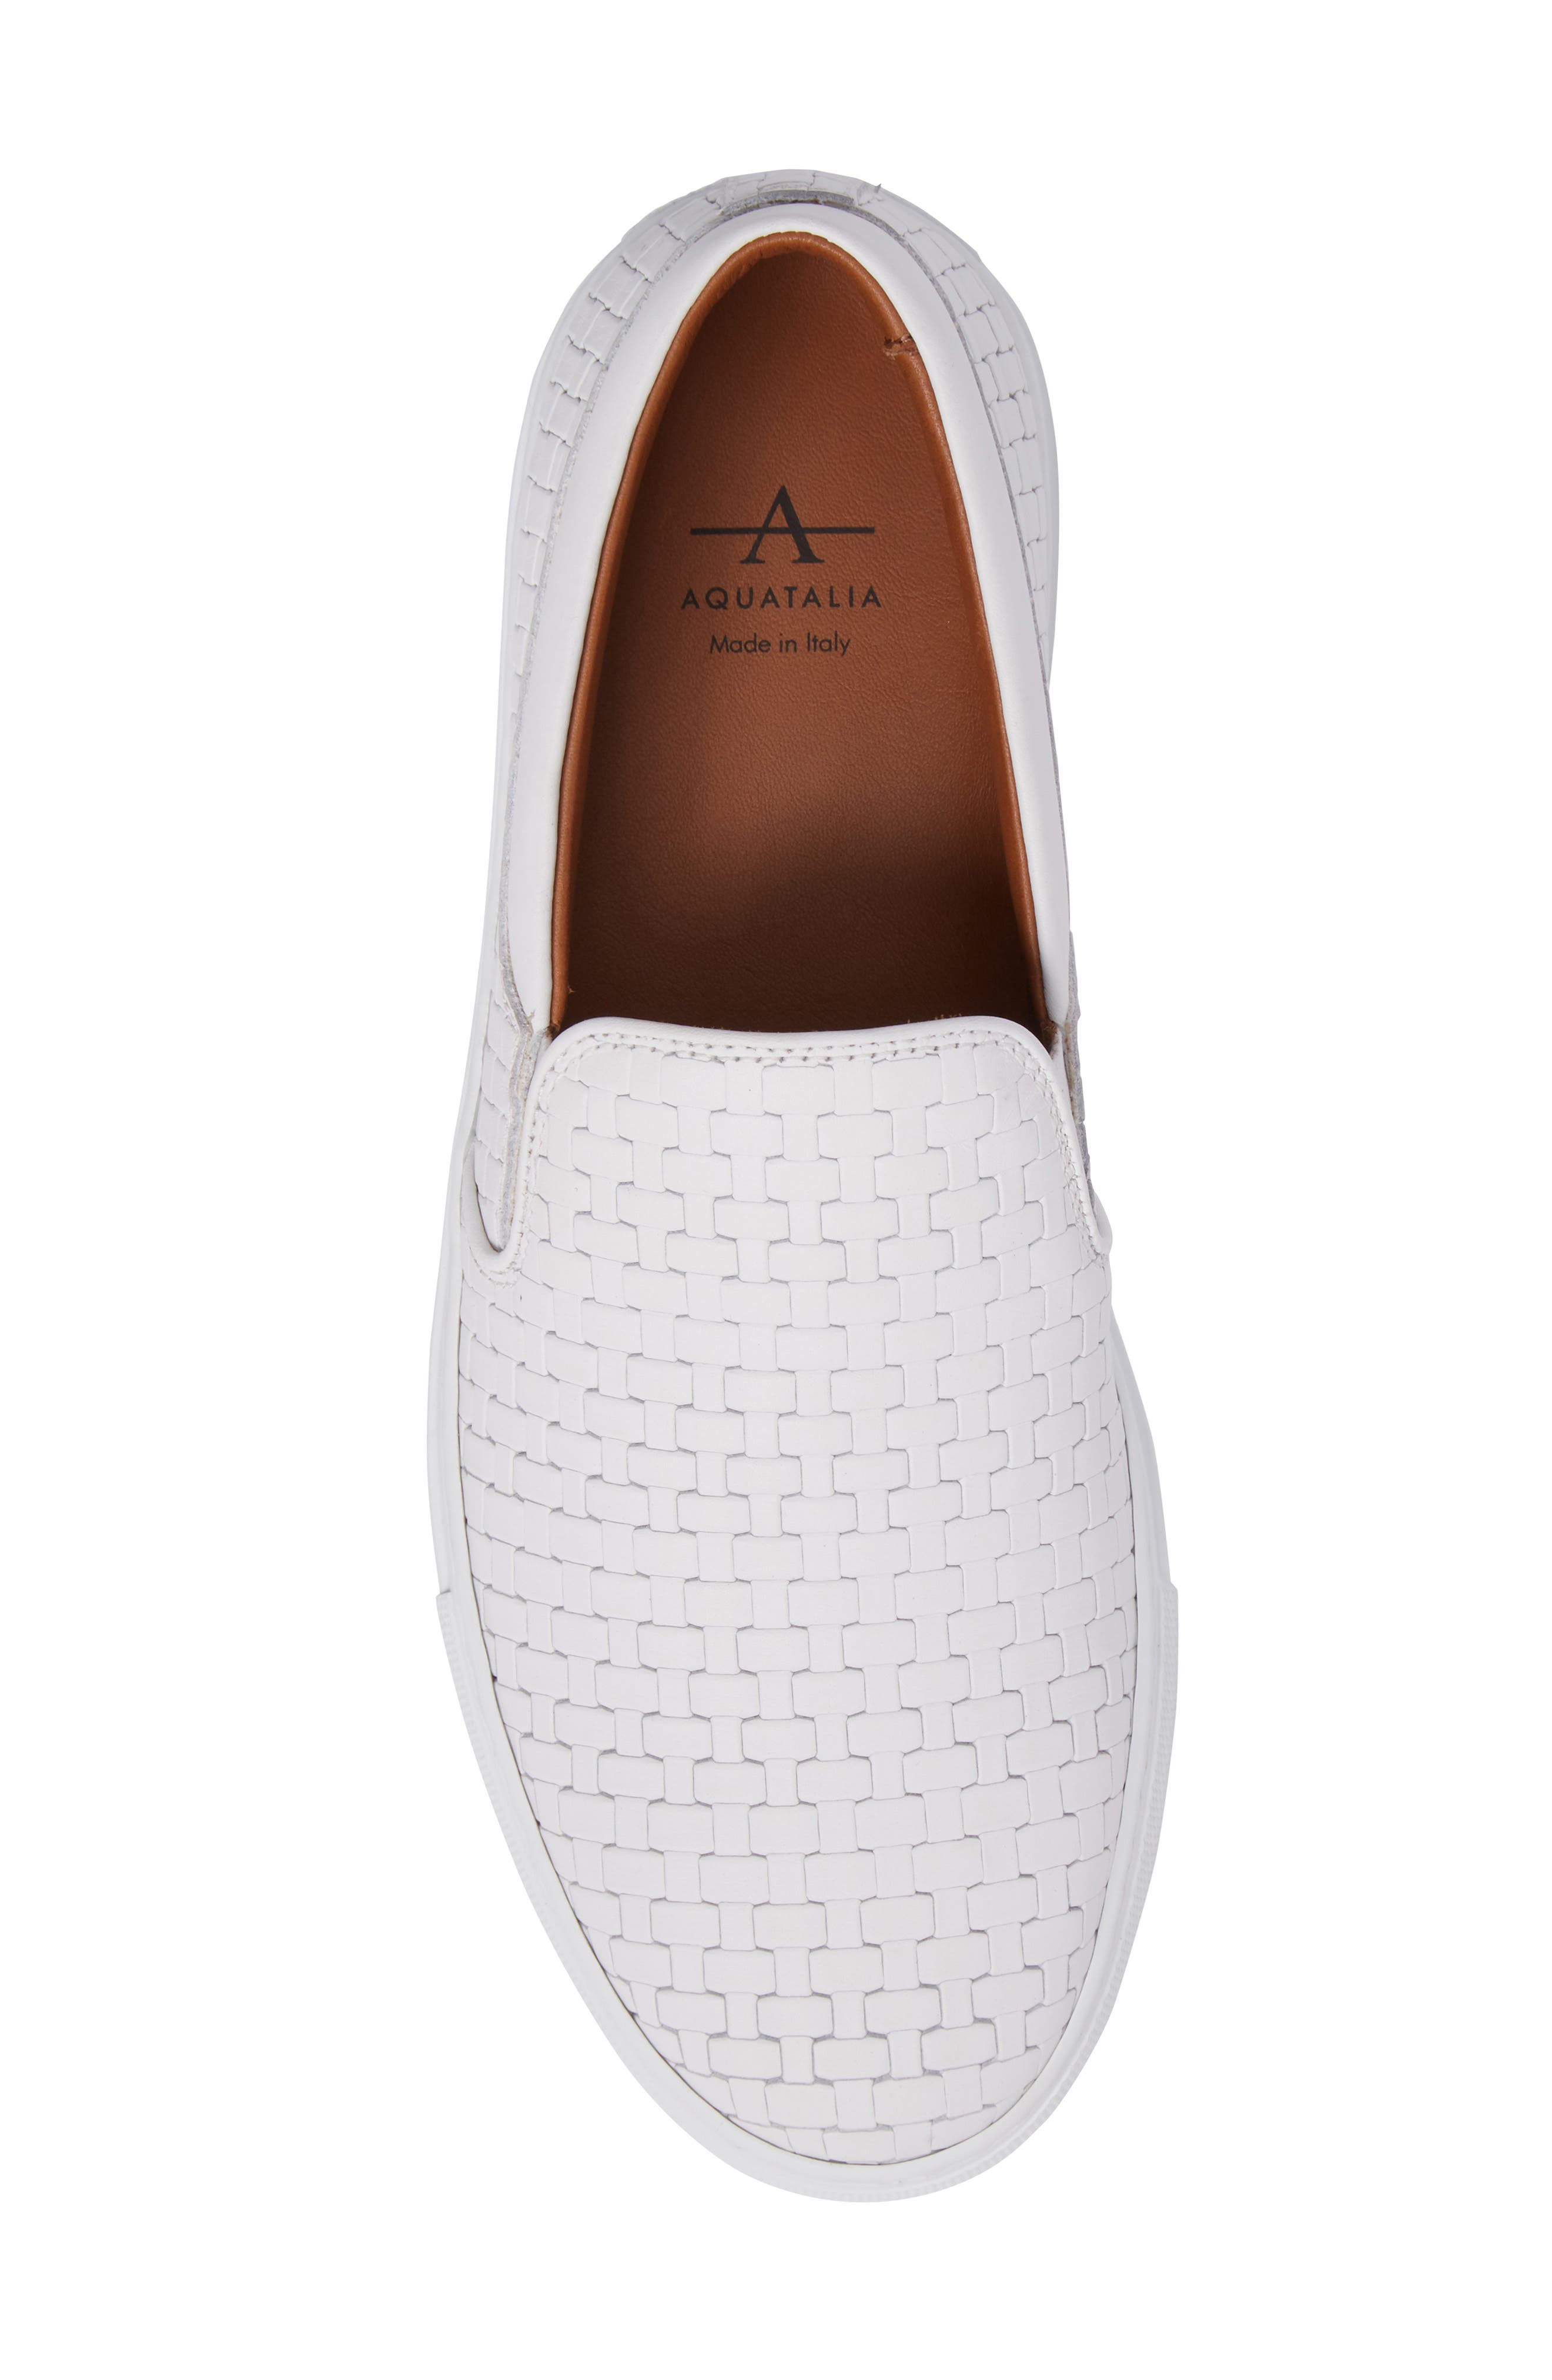 AQUATALIA, Ashlynn Embossed Slip-On Sneaker, Alternate thumbnail 5, color, WHITE